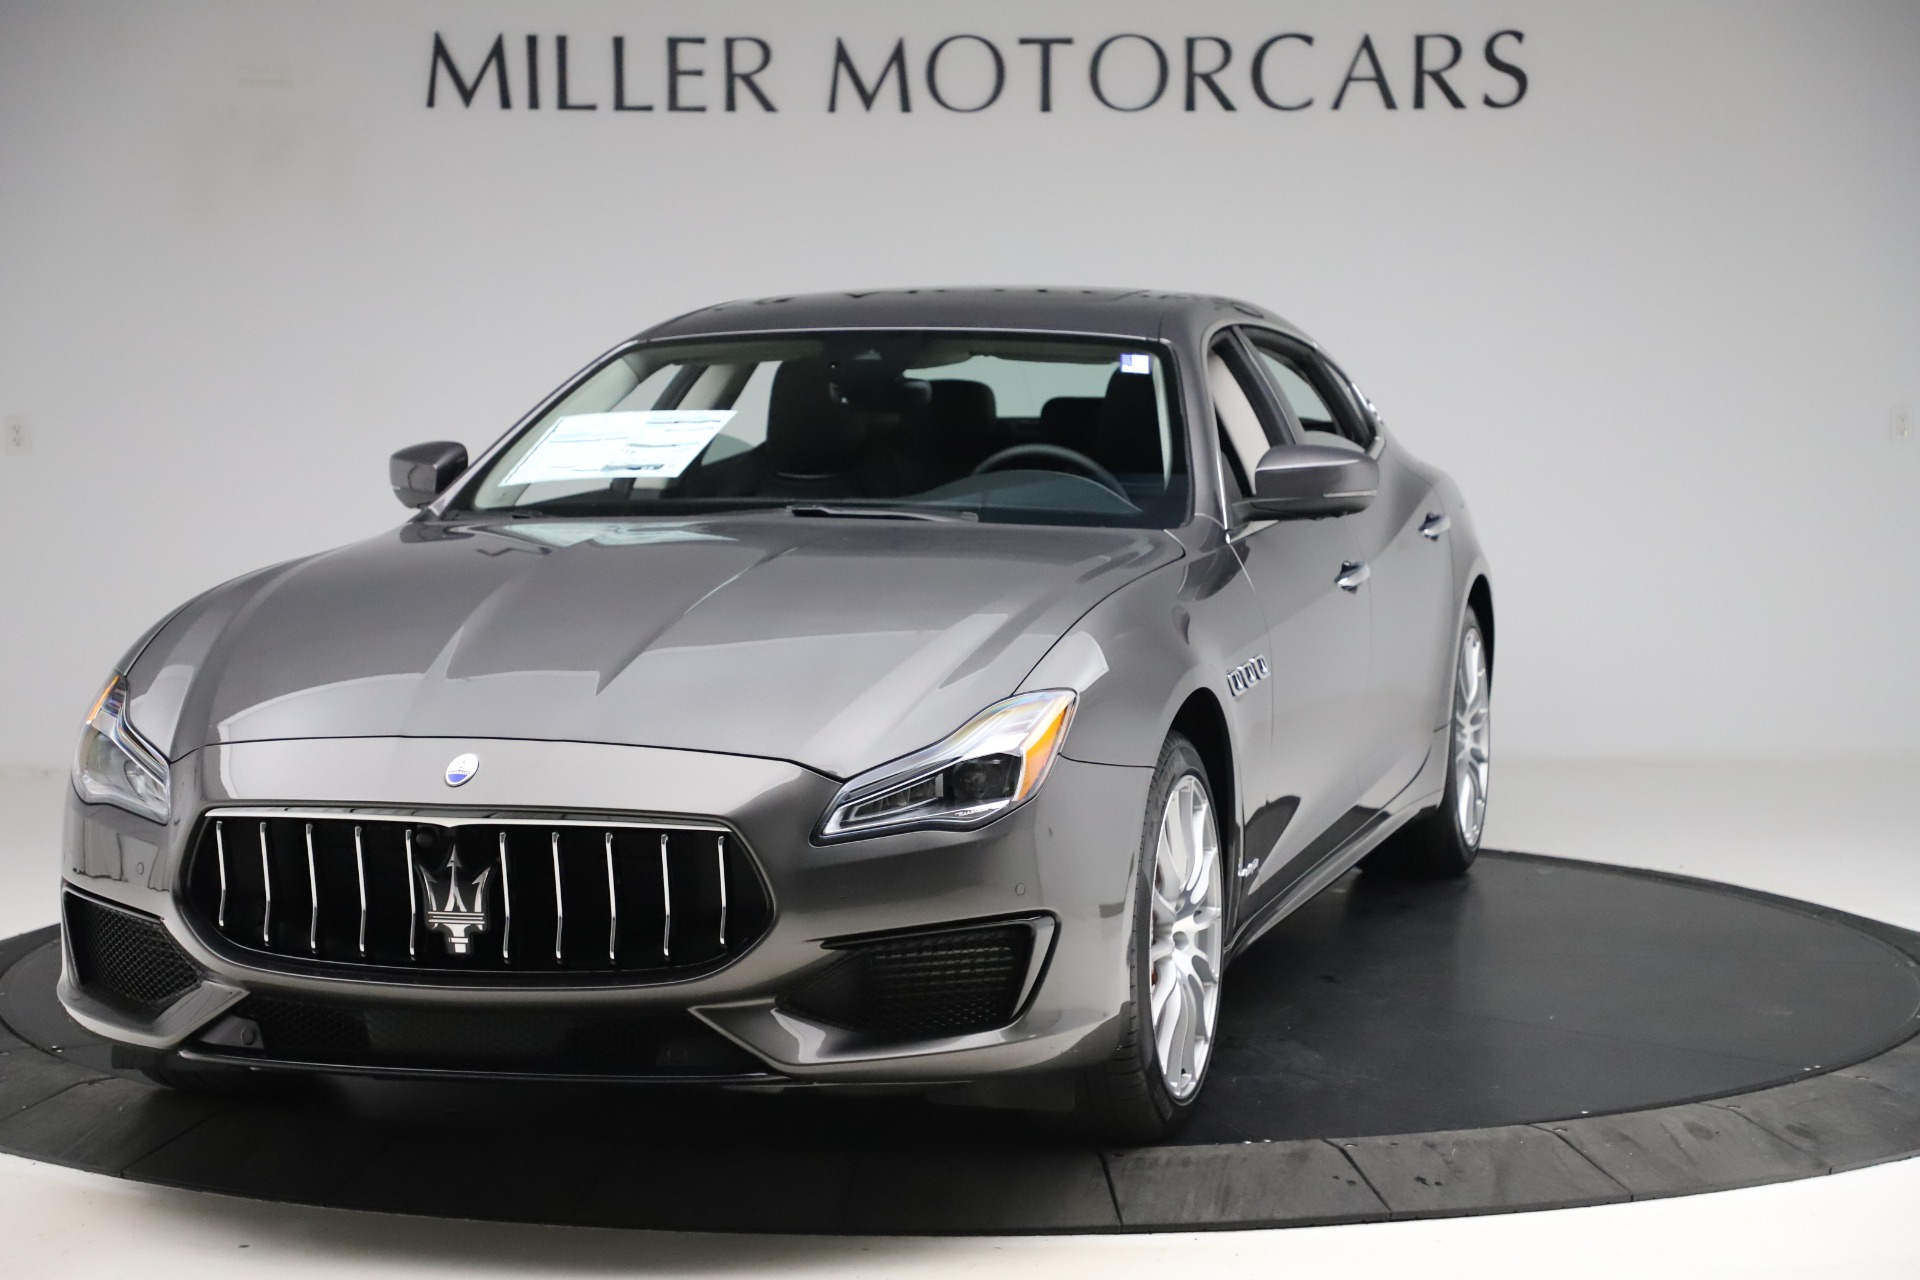 New 2020 Maserati Quattroporte S Q4 GranSport for sale $121,885 at Rolls-Royce Motor Cars Greenwich in Greenwich CT 06830 1